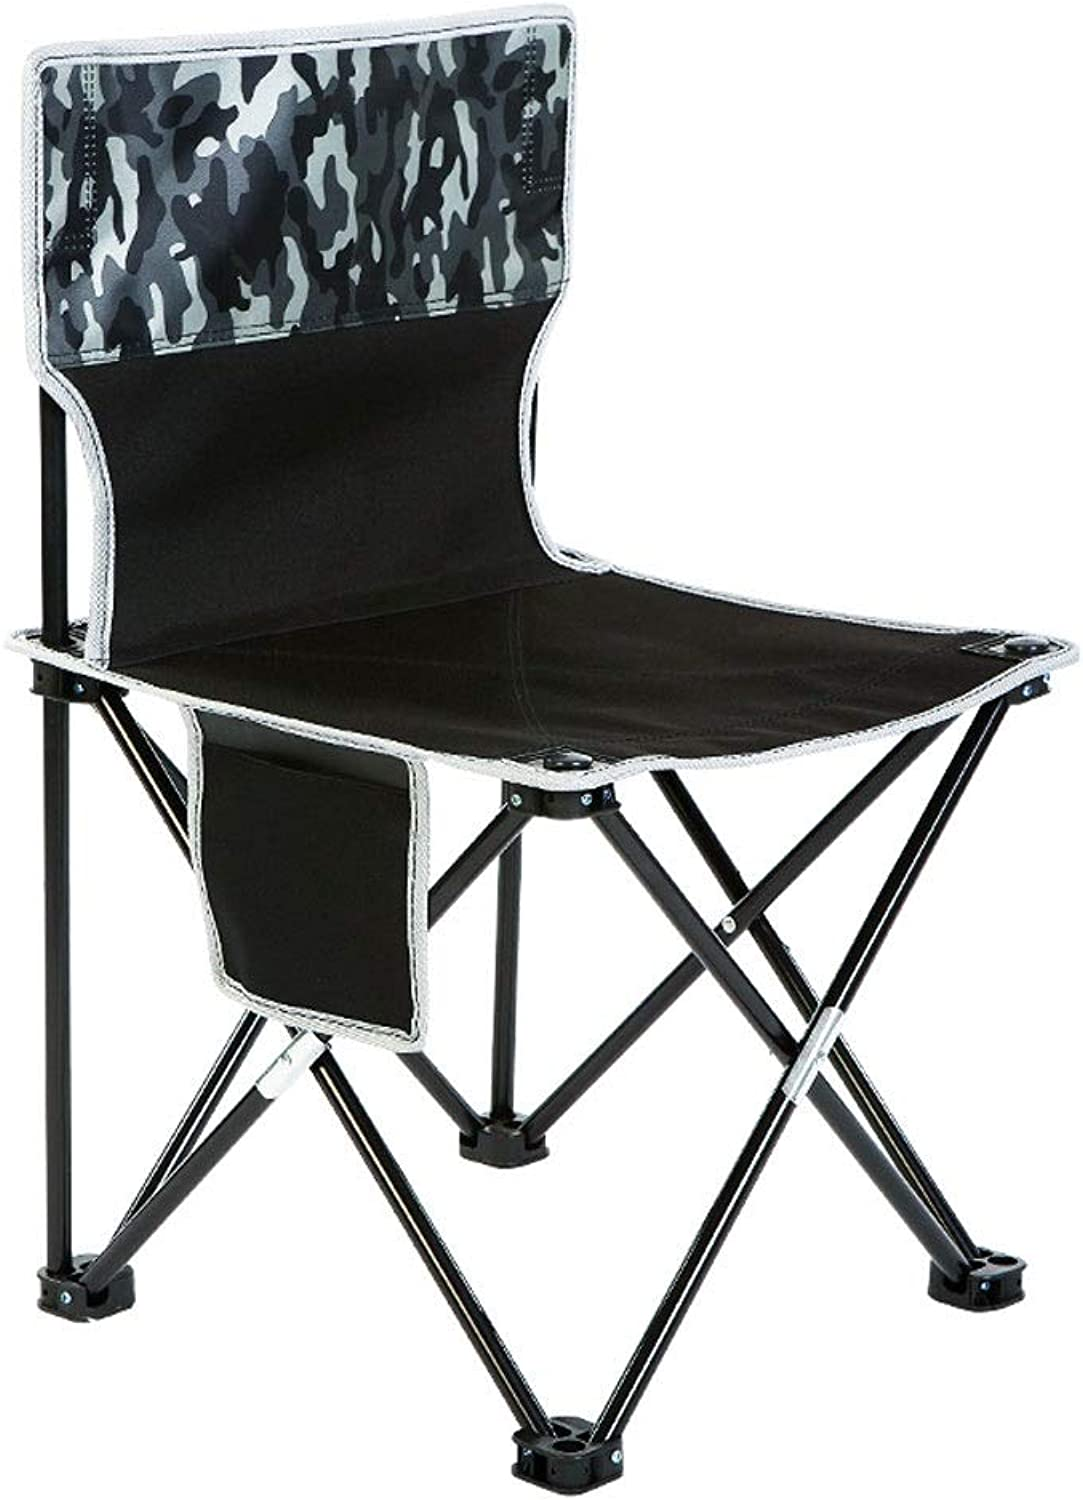 Camping Chair Backrest Outdoor Portable Folding Chair NonSlip Fishing Stool Sketch Travel Beach Chair Lined up Small Bench Camping Barbecue Chair Oxford Cloth Washable Folding Chair